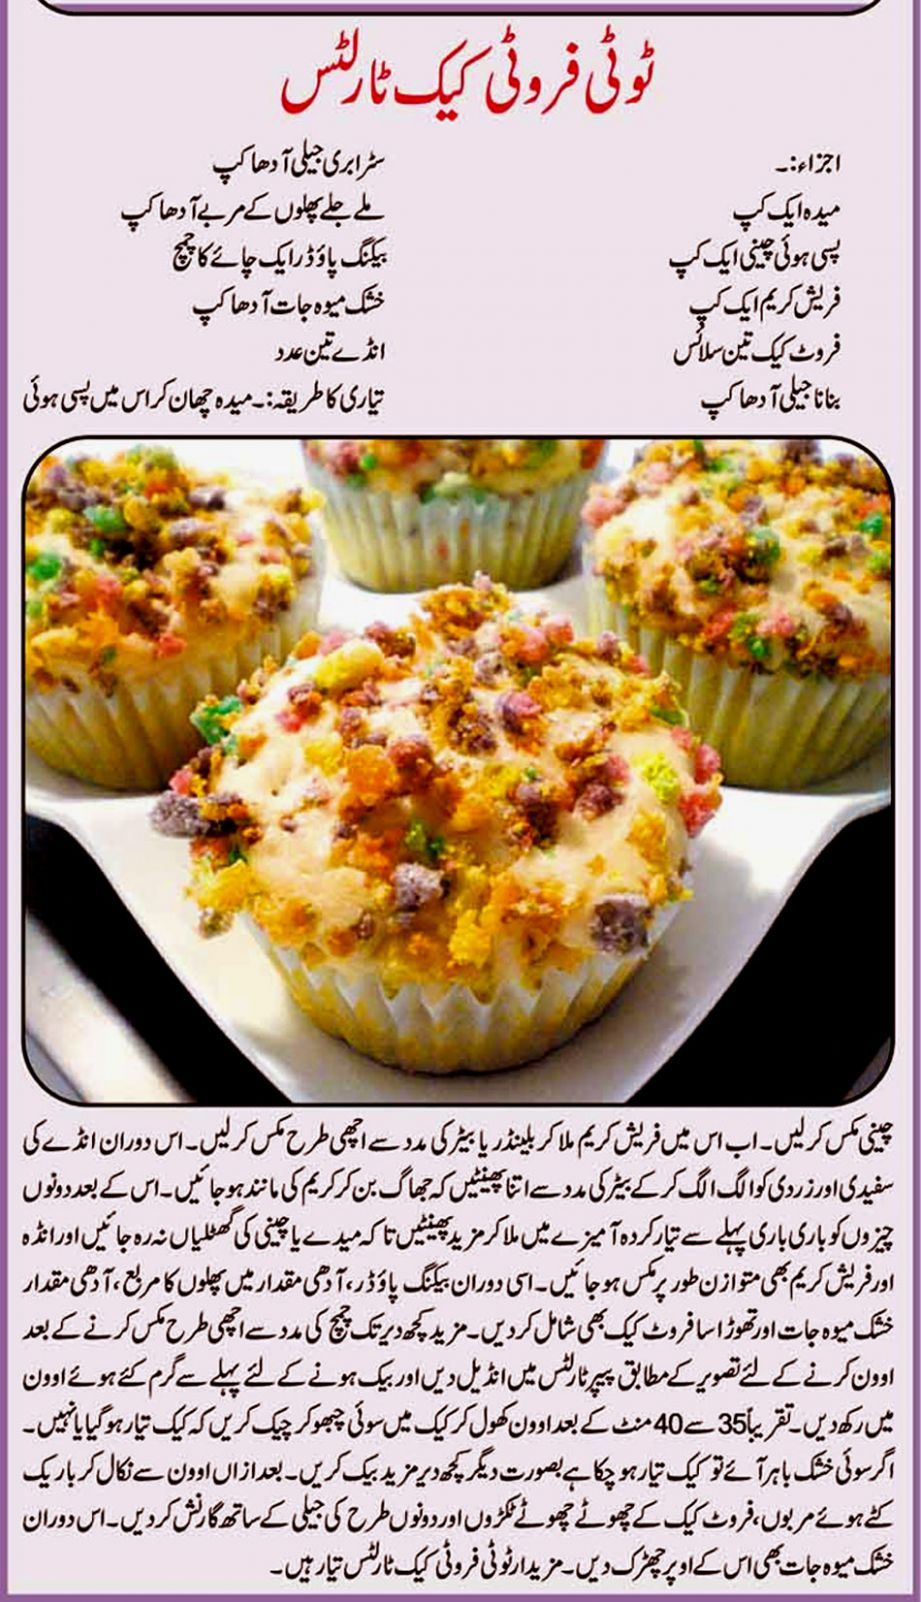 Strawberry Shortcake - Food Recipes Urdu